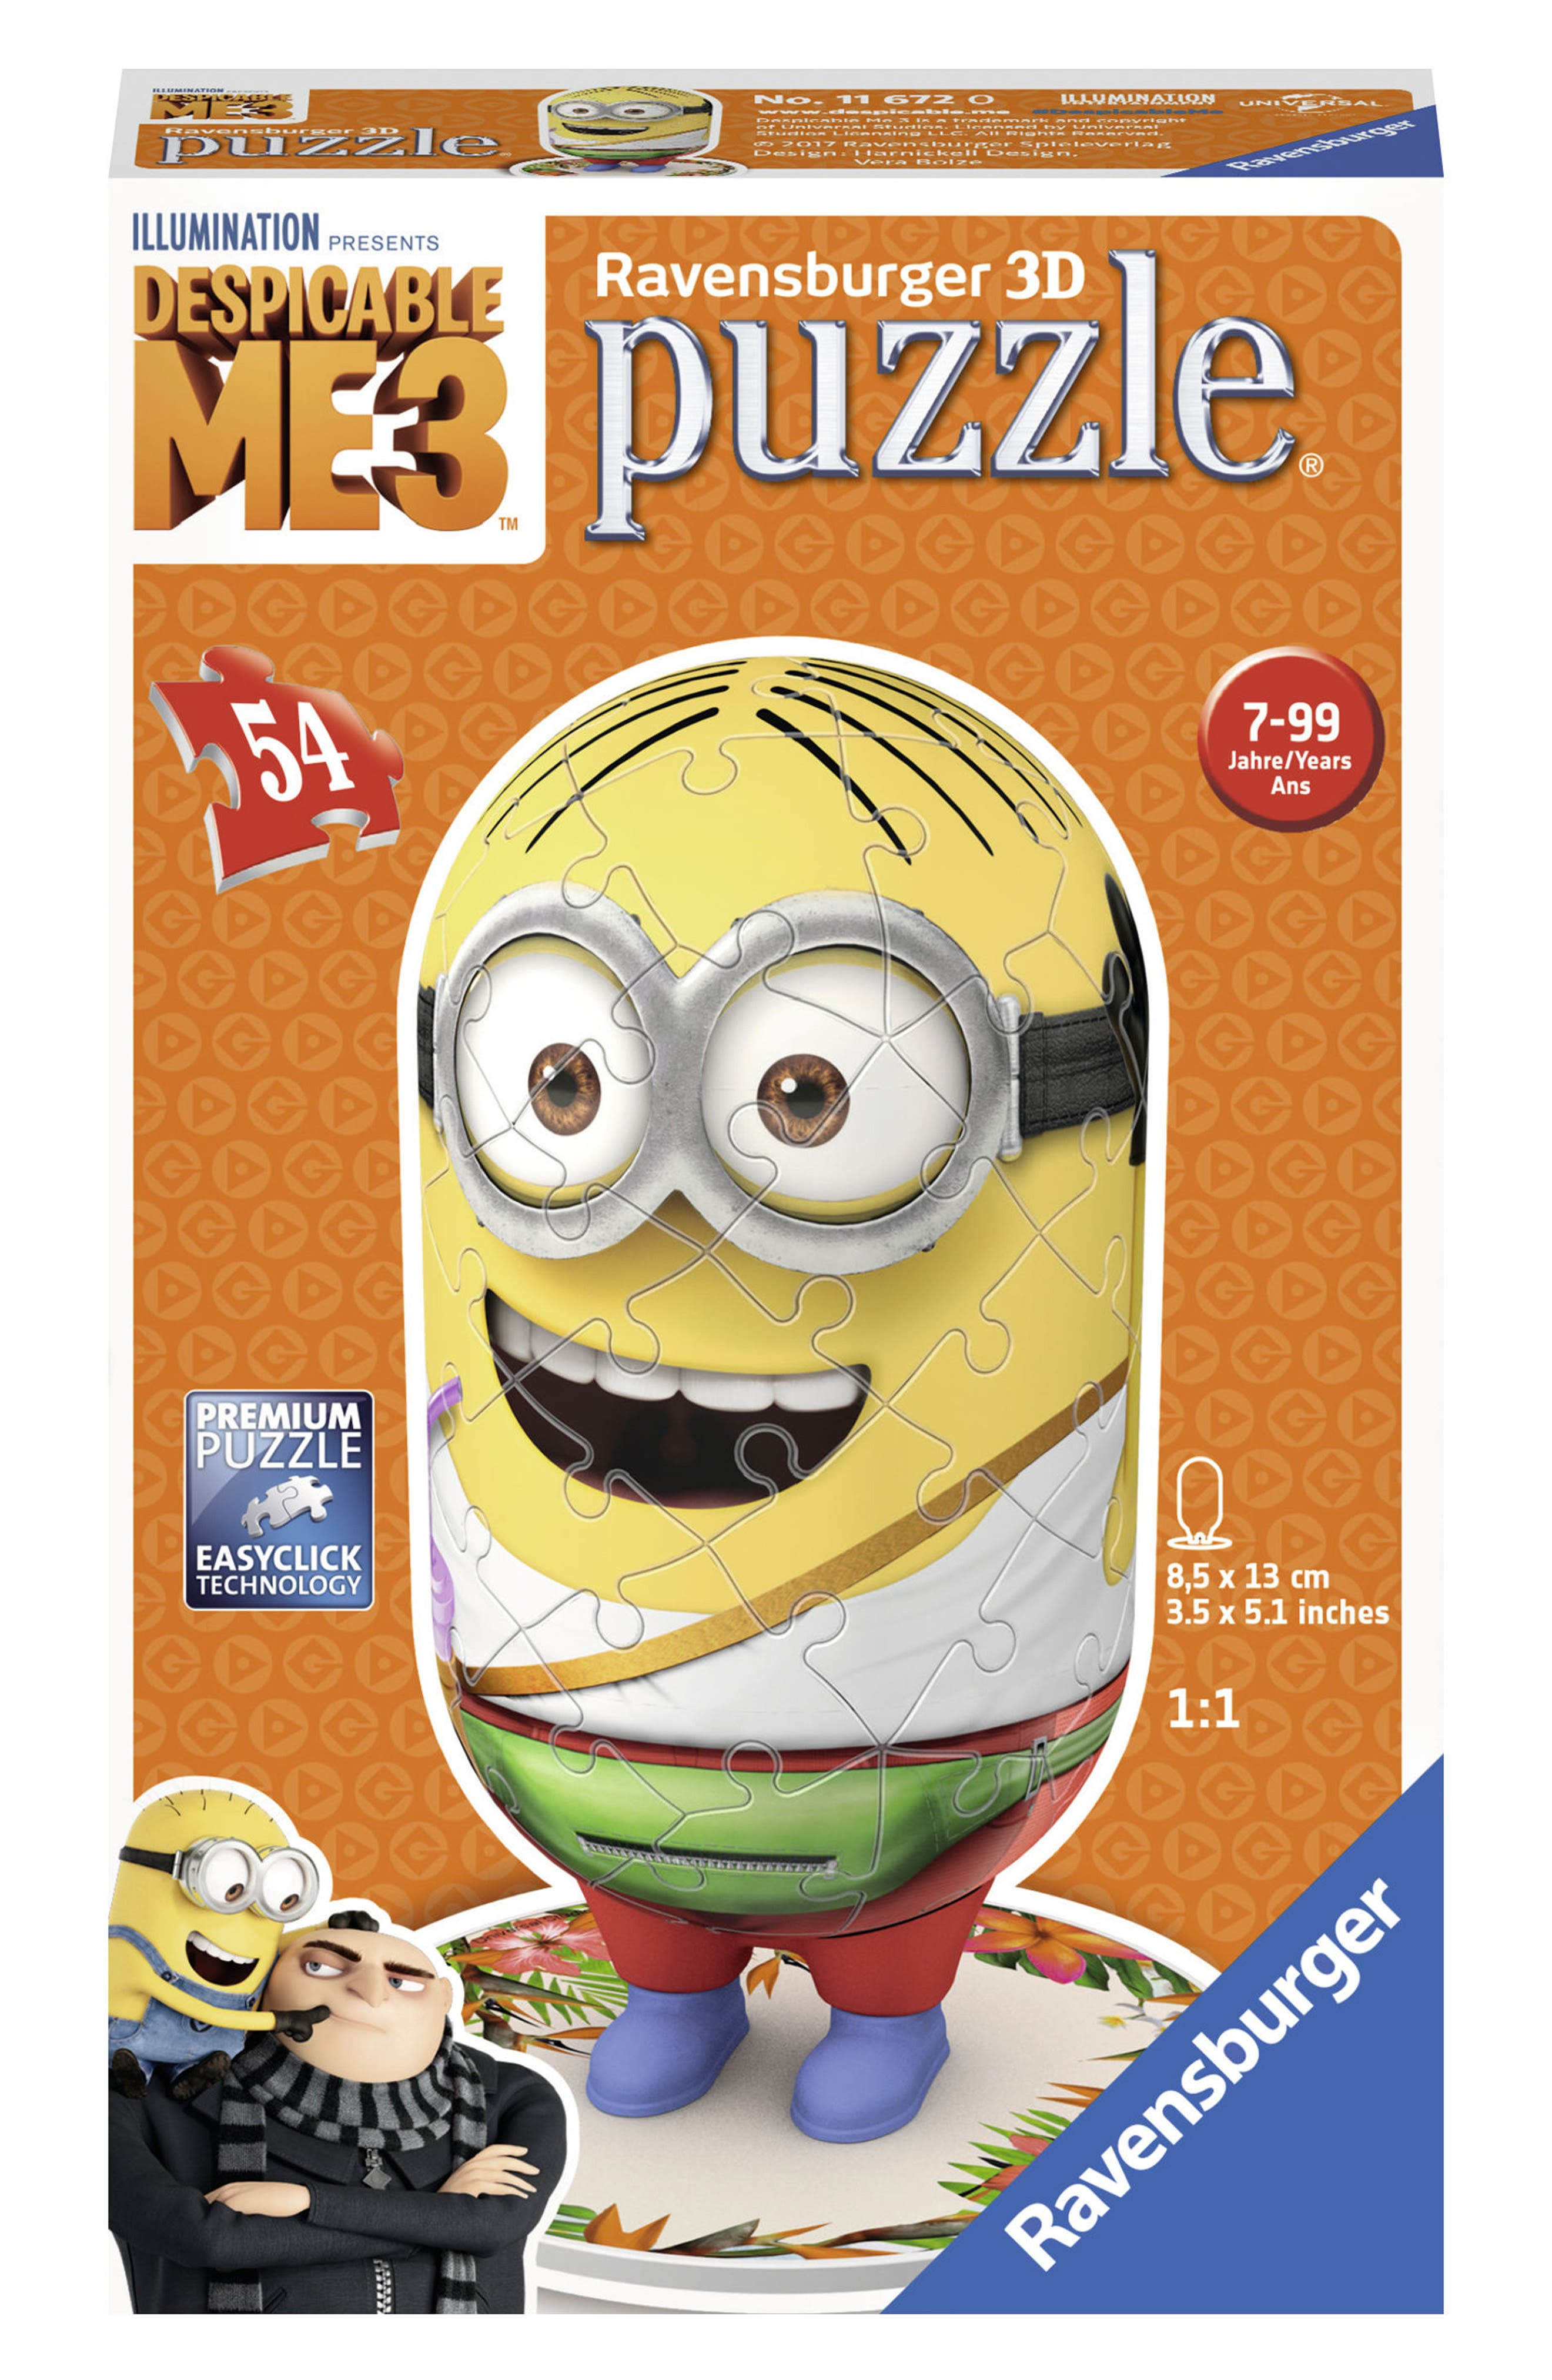 54-Piece Despicable Me 3 Minion 3D Puzzle,                             Main thumbnail 1, color,                             700